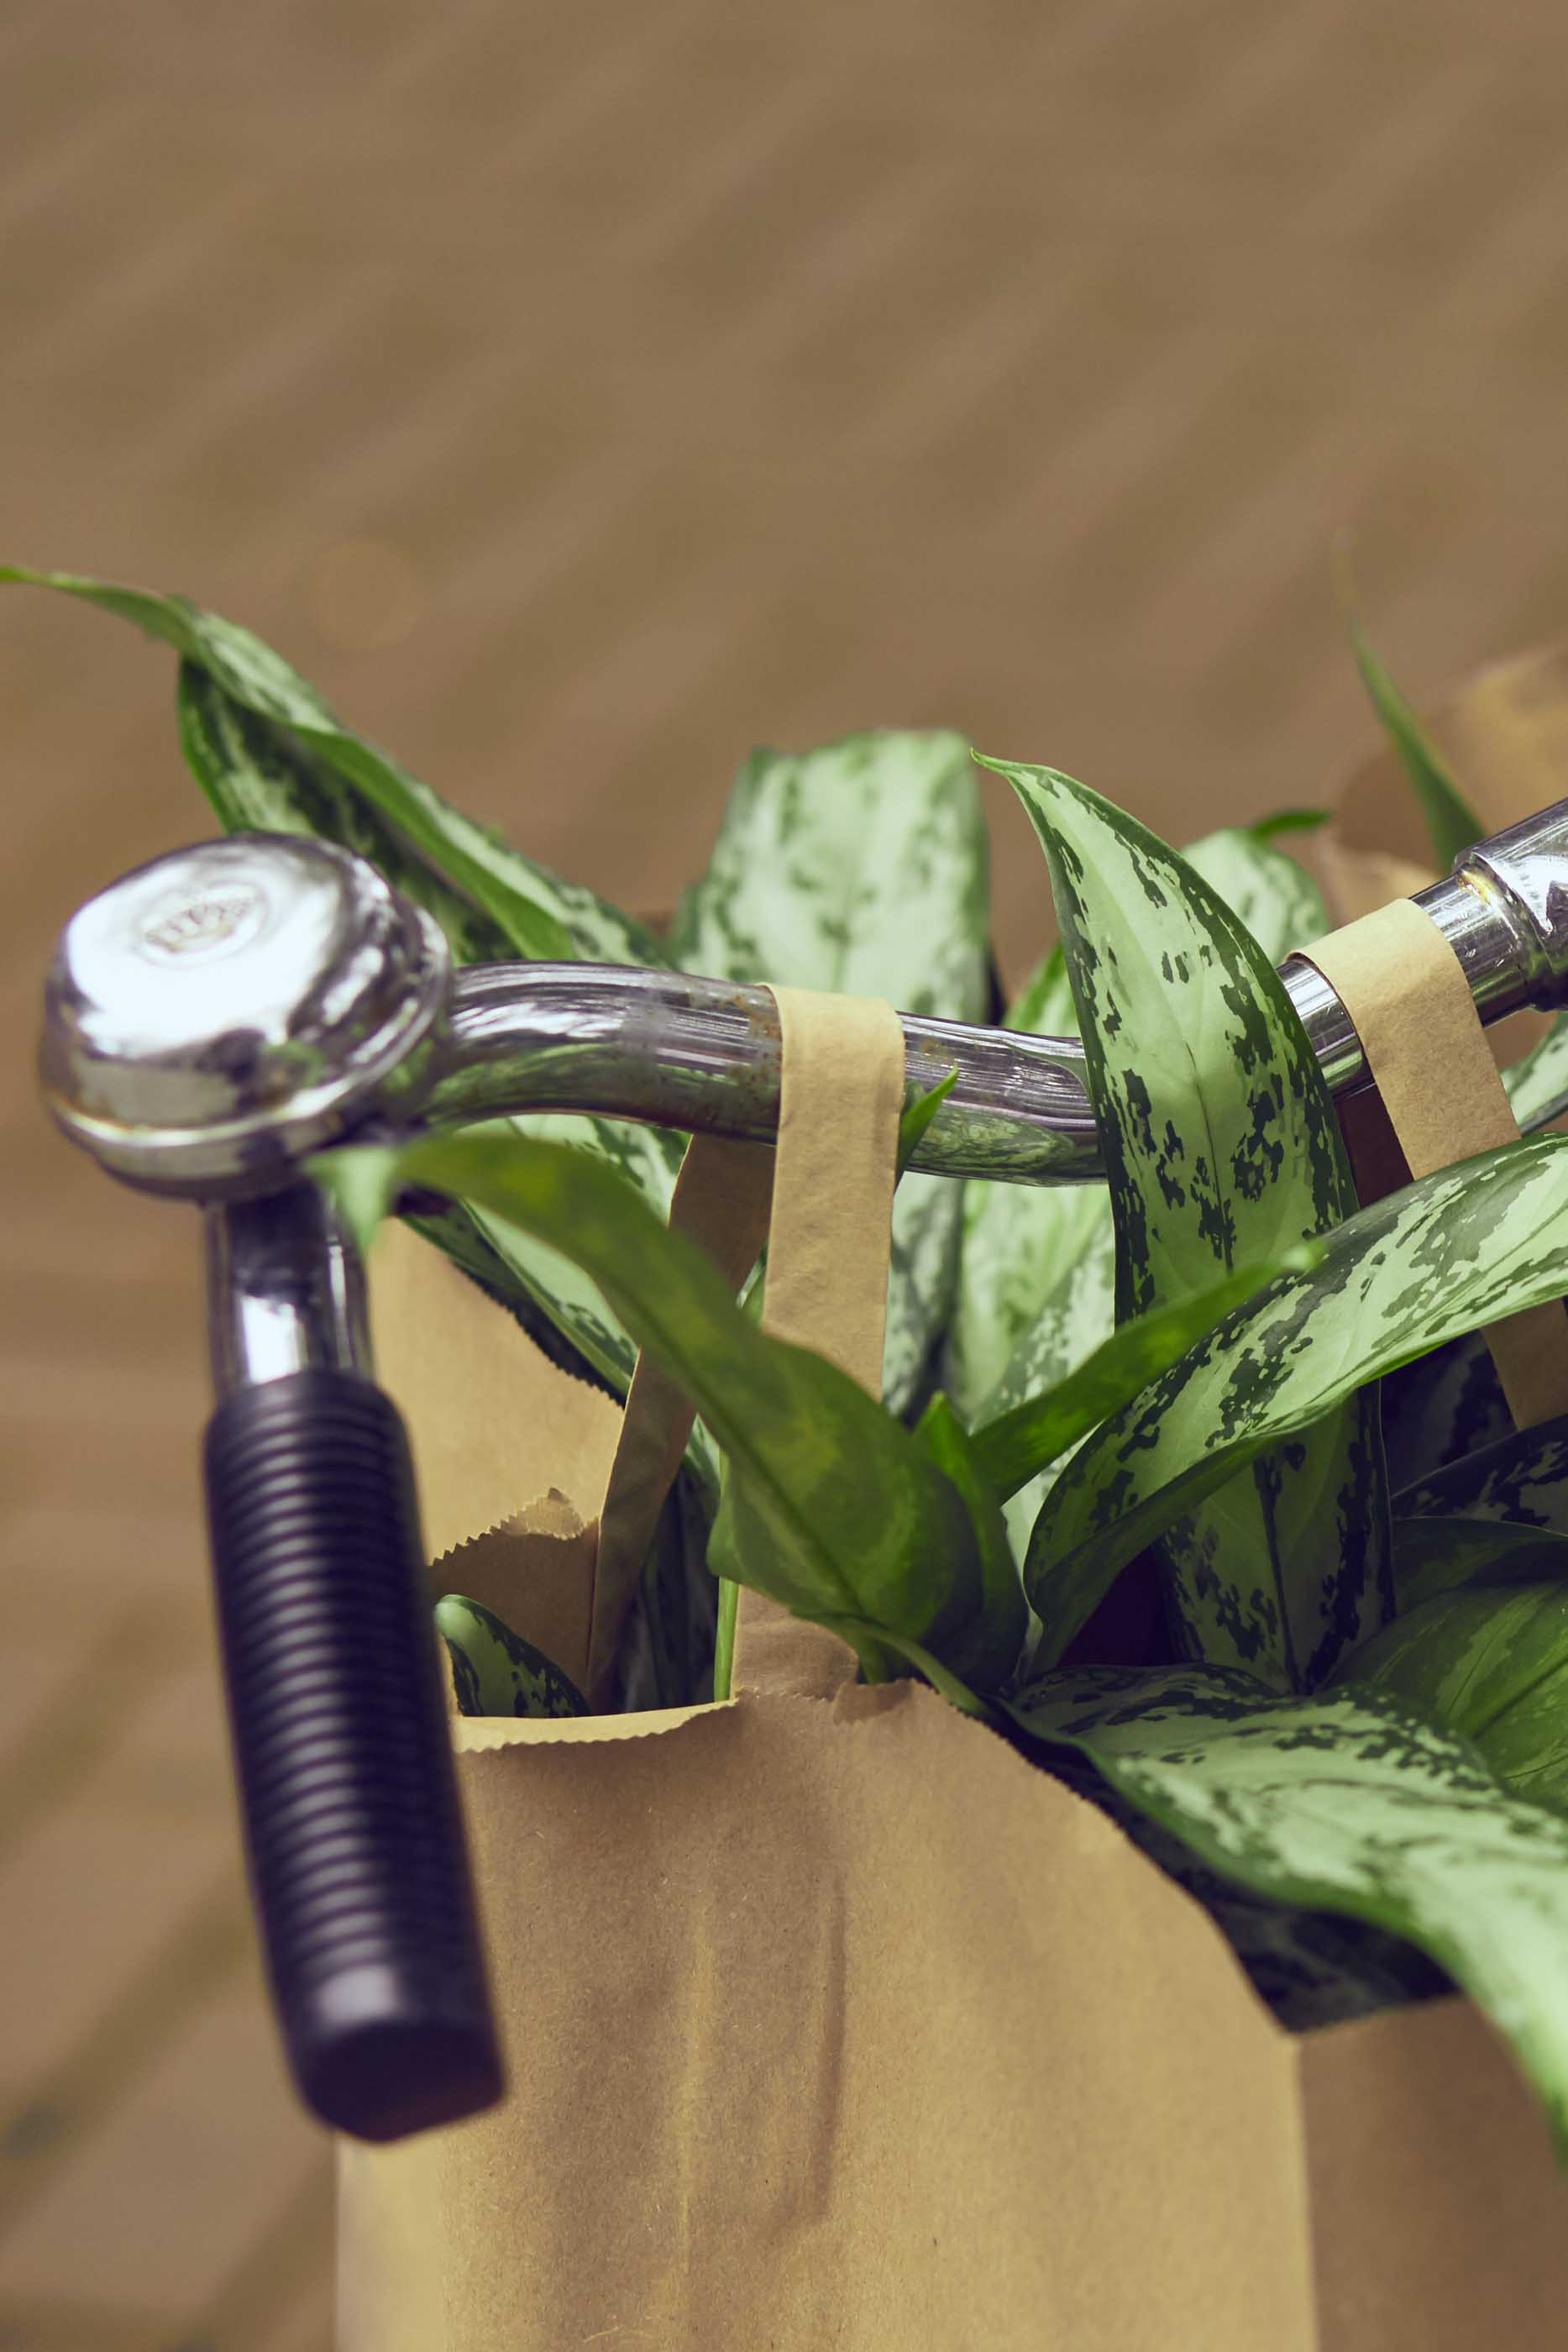 Detail of bycicle handbar holding two paper bags with plants inside